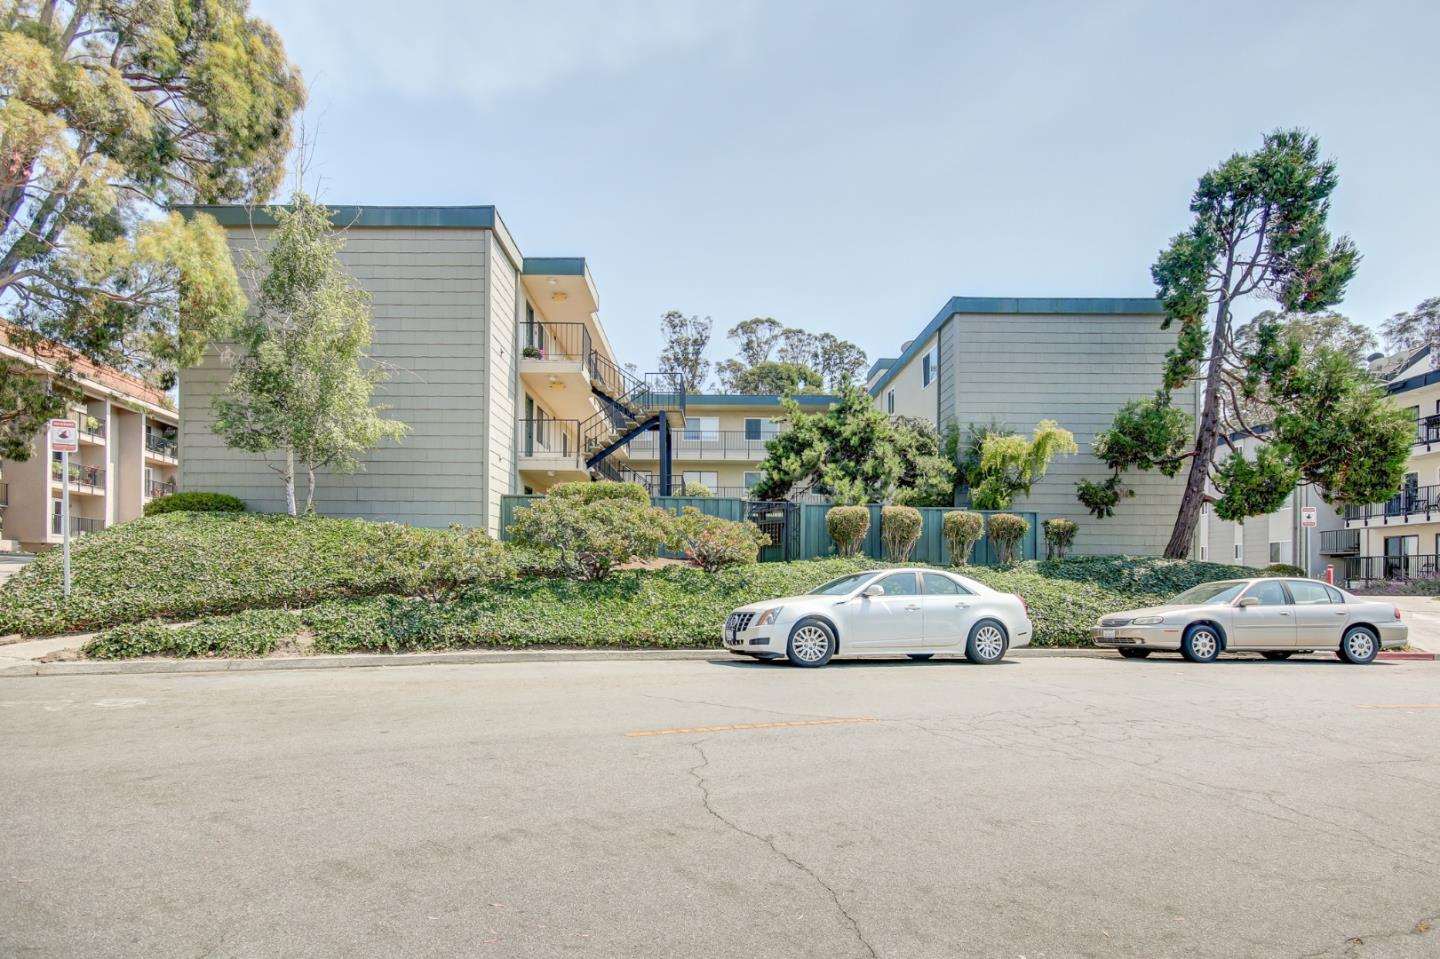 2nd Floor end unit in small quiet complex. Unobstructed views of Monterey, the Bay and Cement Ship. Completely remodeled in 2014/2015. 2 bed, 1.5 bath, Complex has pool and laundry on site as well as a Crow's Nexst on the roof for occupants use. Quick walk down to New Brighton Beach. Watch the whales, pelicans, dolphins and sail boats as they meander past. Word from the HOA board is the builder that built this building reserved this unit for himself as the views are so amazing! For video tour: https://youtu.be/1SSyFzpvH4Y